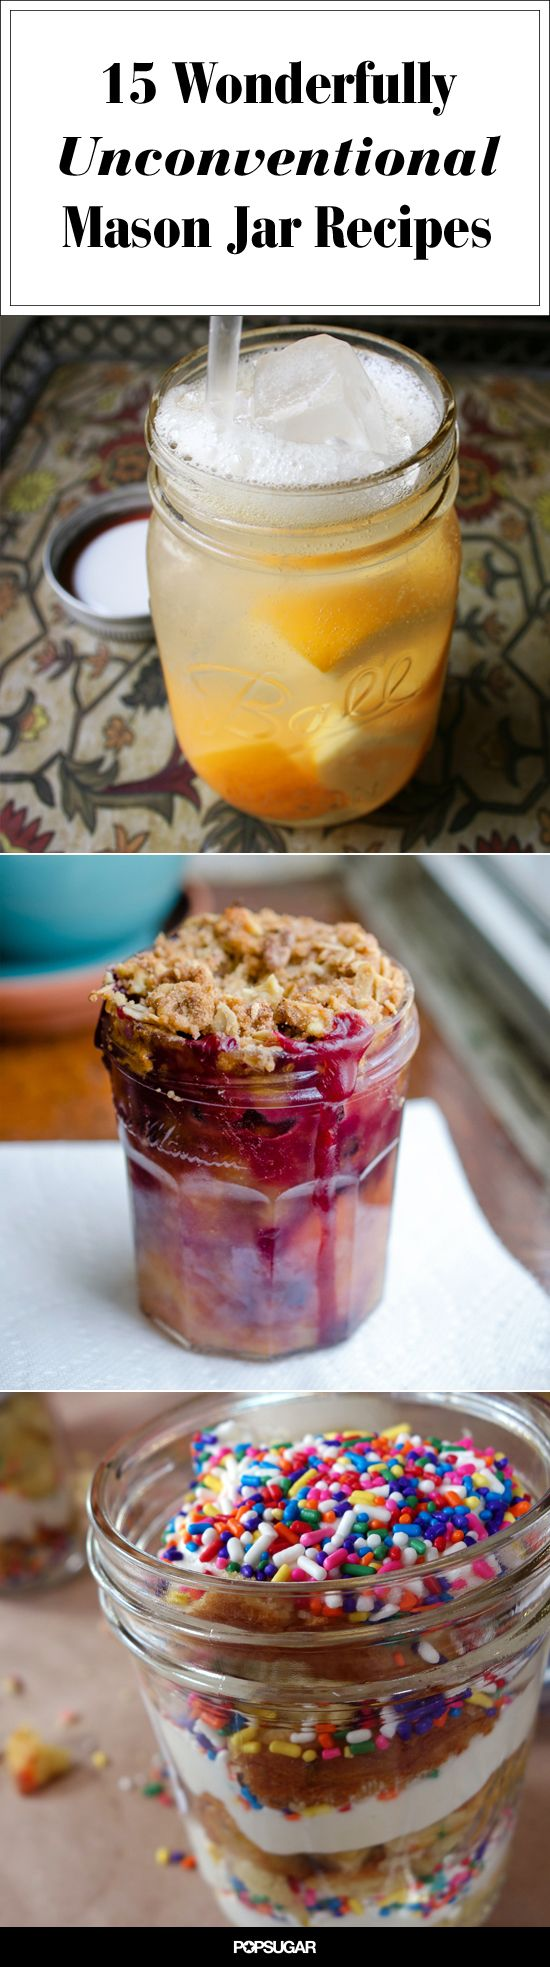 15 Unconventional Mason Jar Recipes That Are Just Crazy Enough to Work